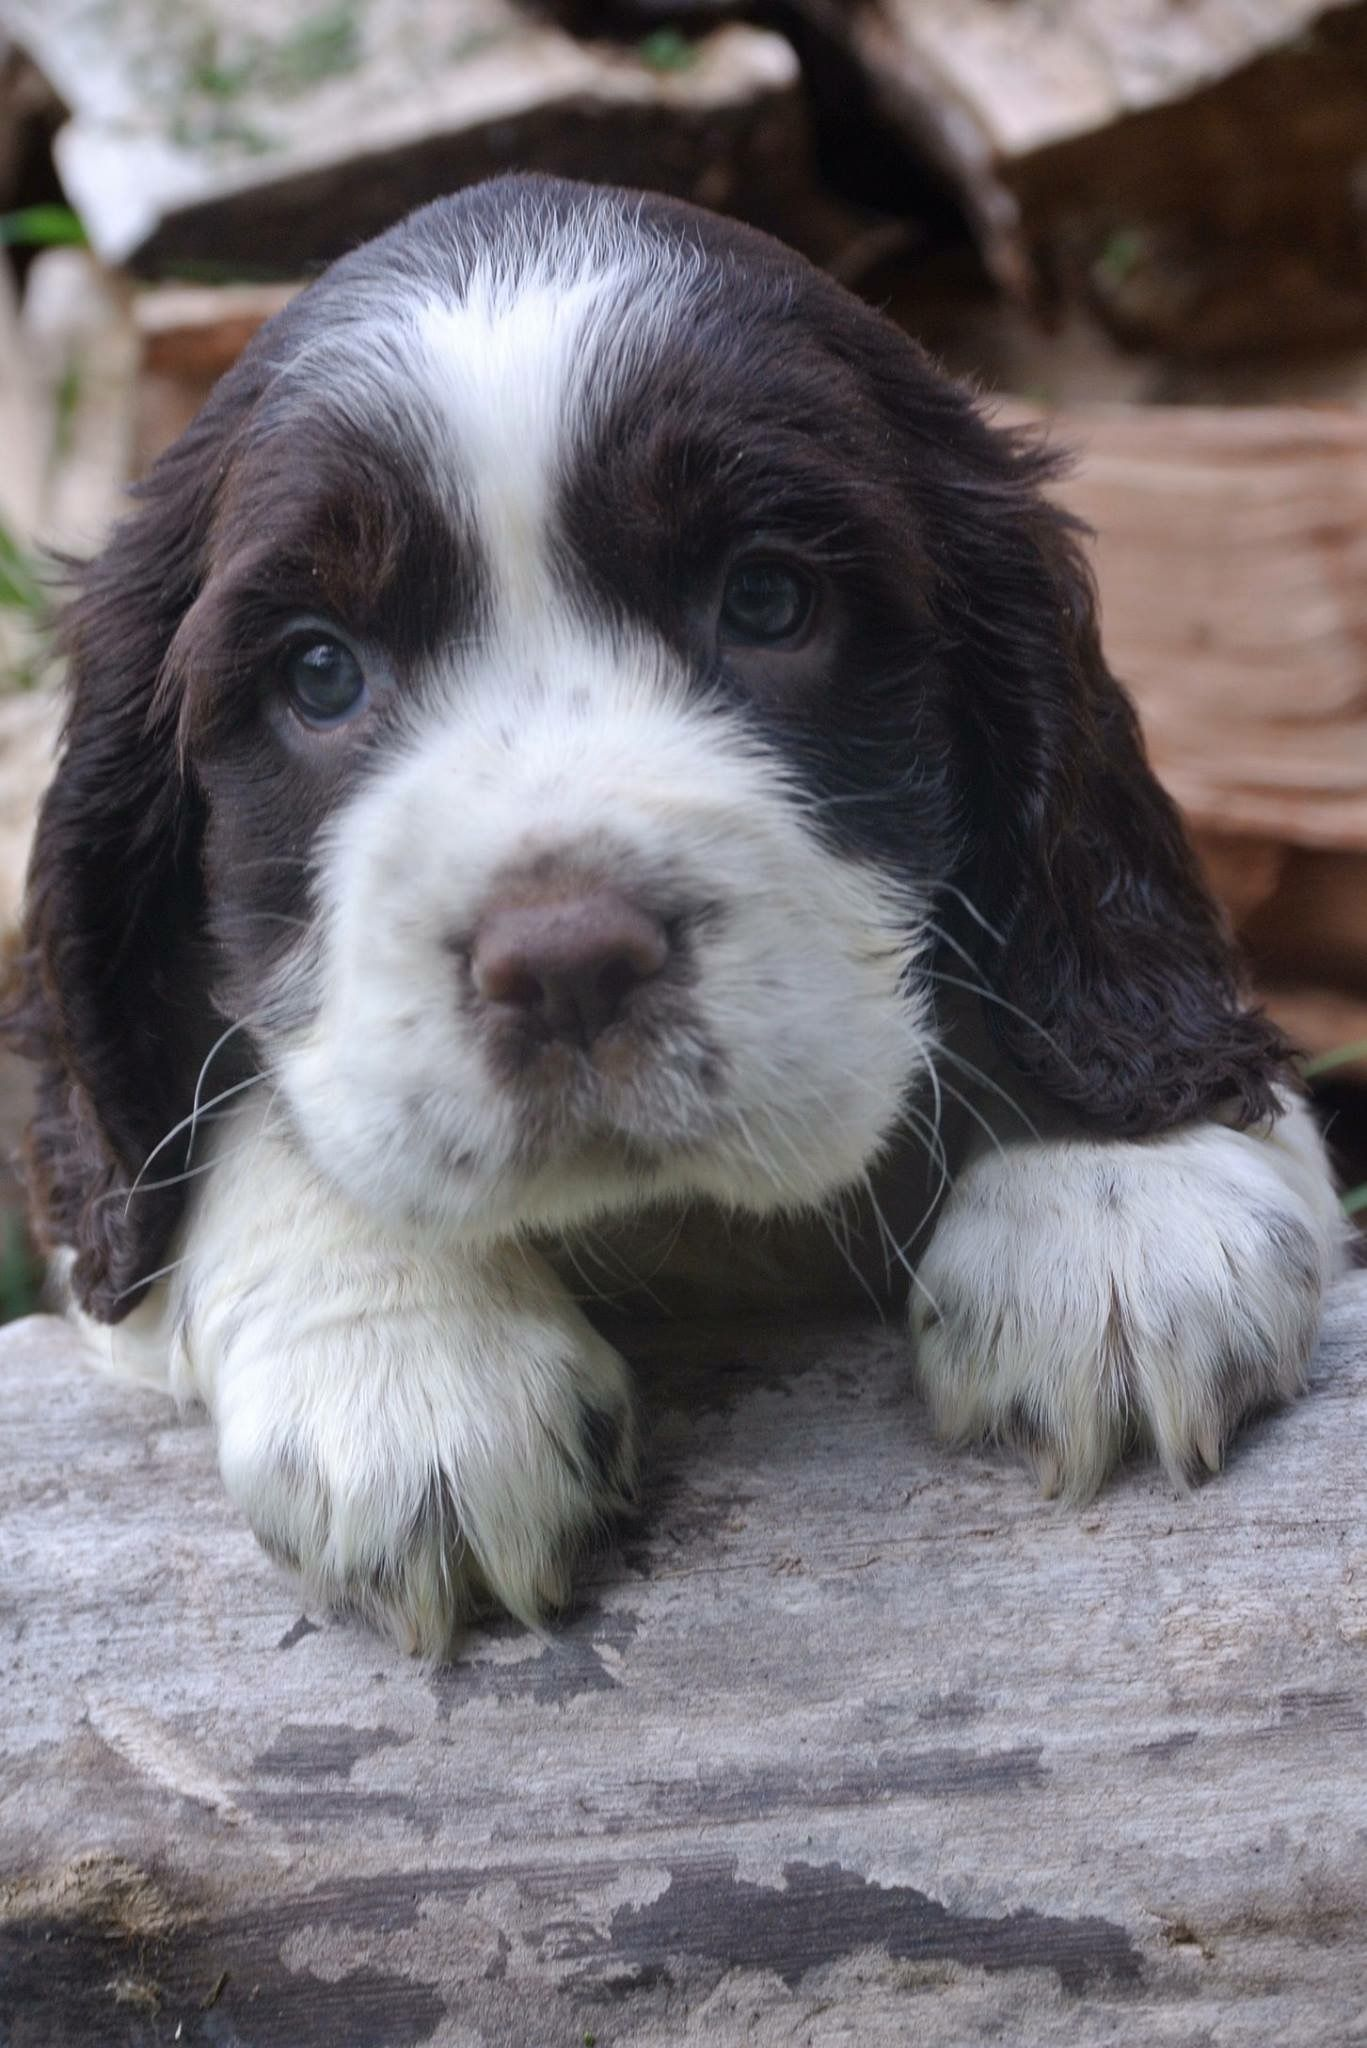 Pin By Melissa Hammer On English Springer Spaniels Springer Puppies Springer Spaniel Puppies Dogs